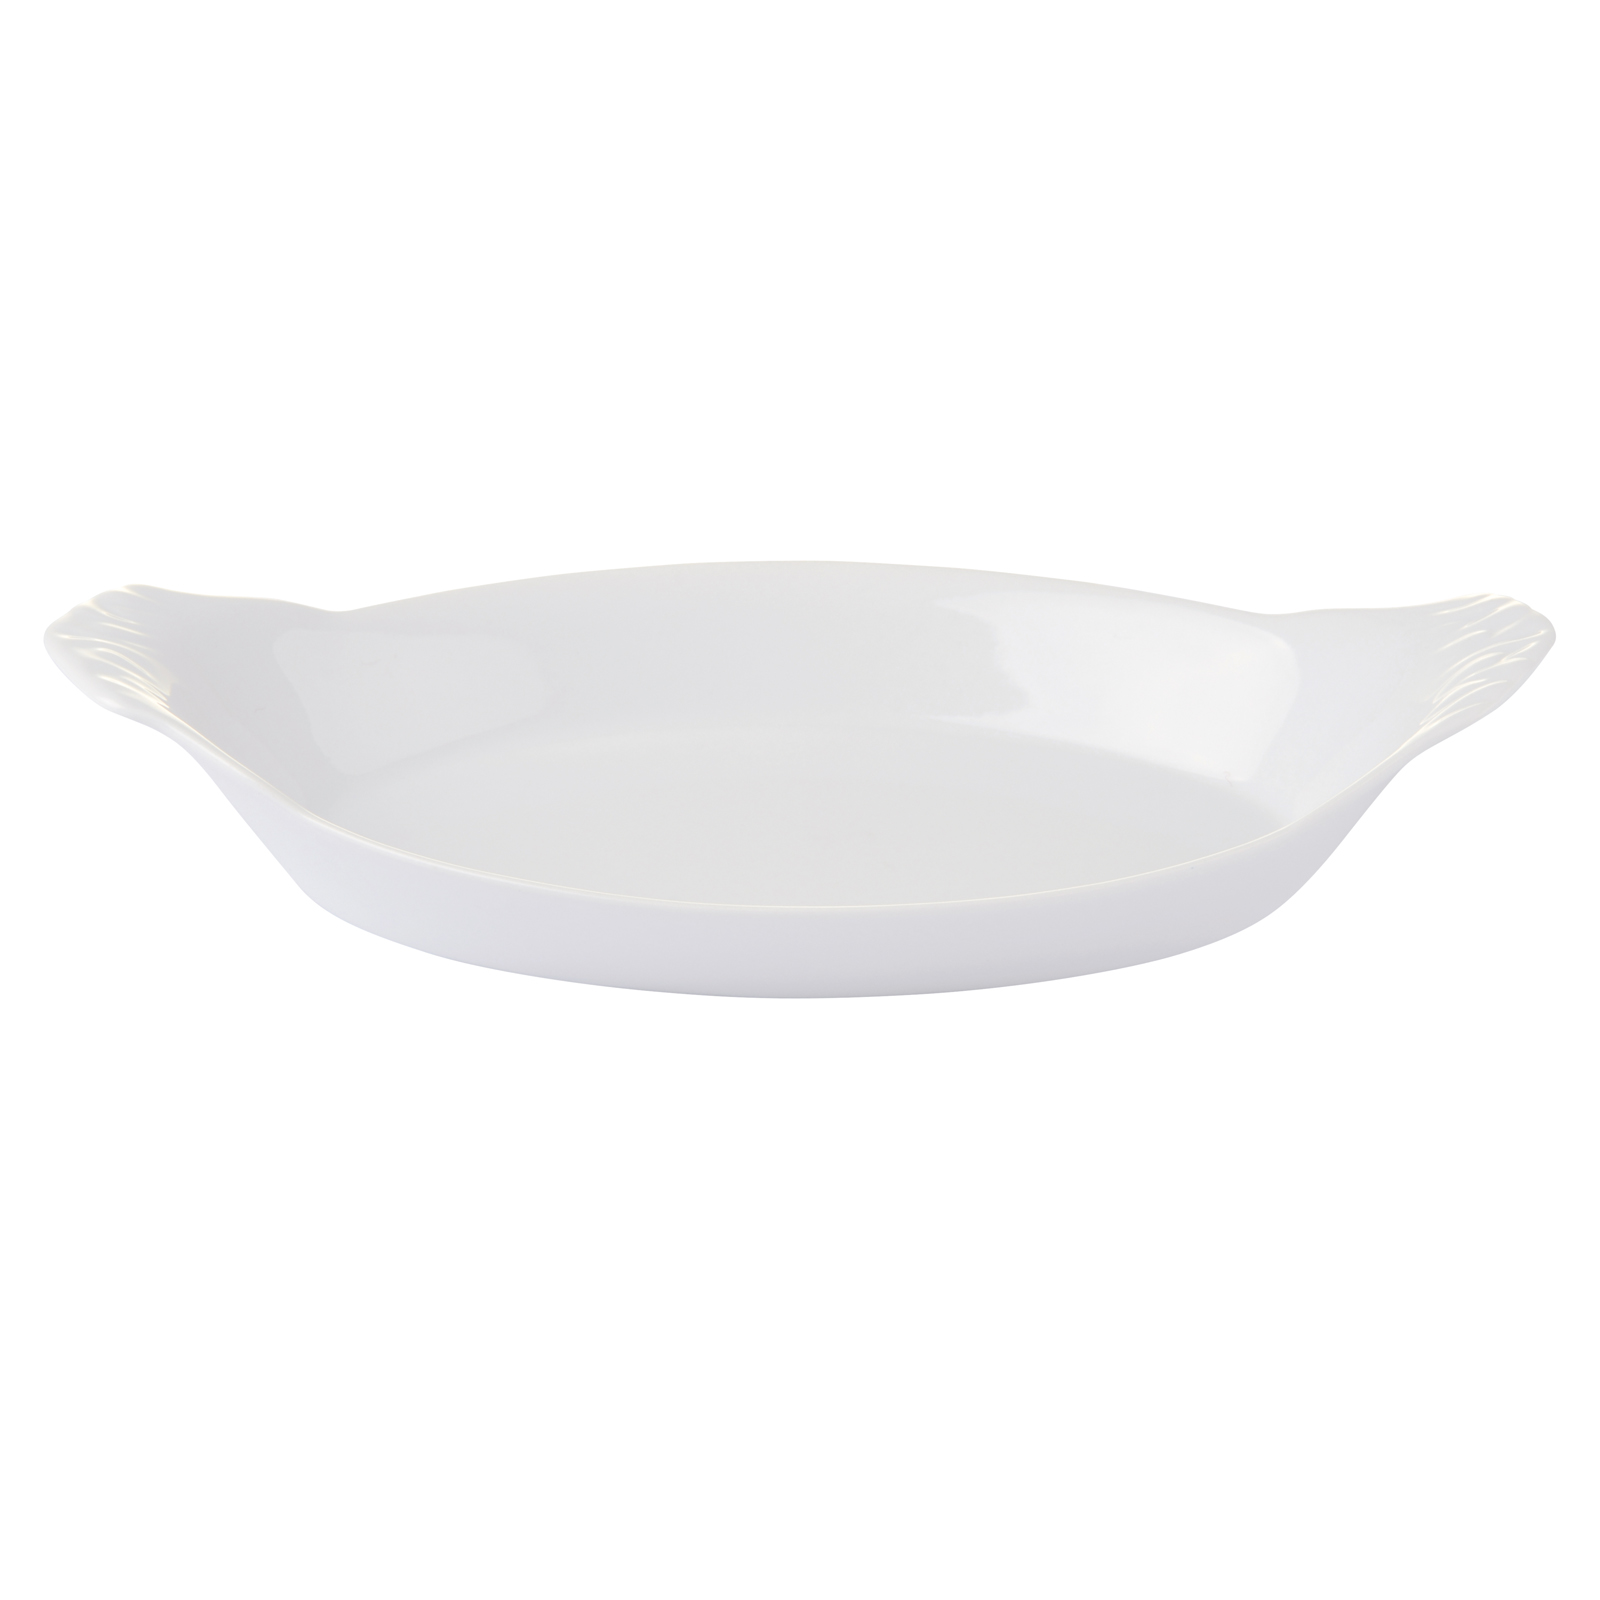 Oval Eared Dish Small  by BIA